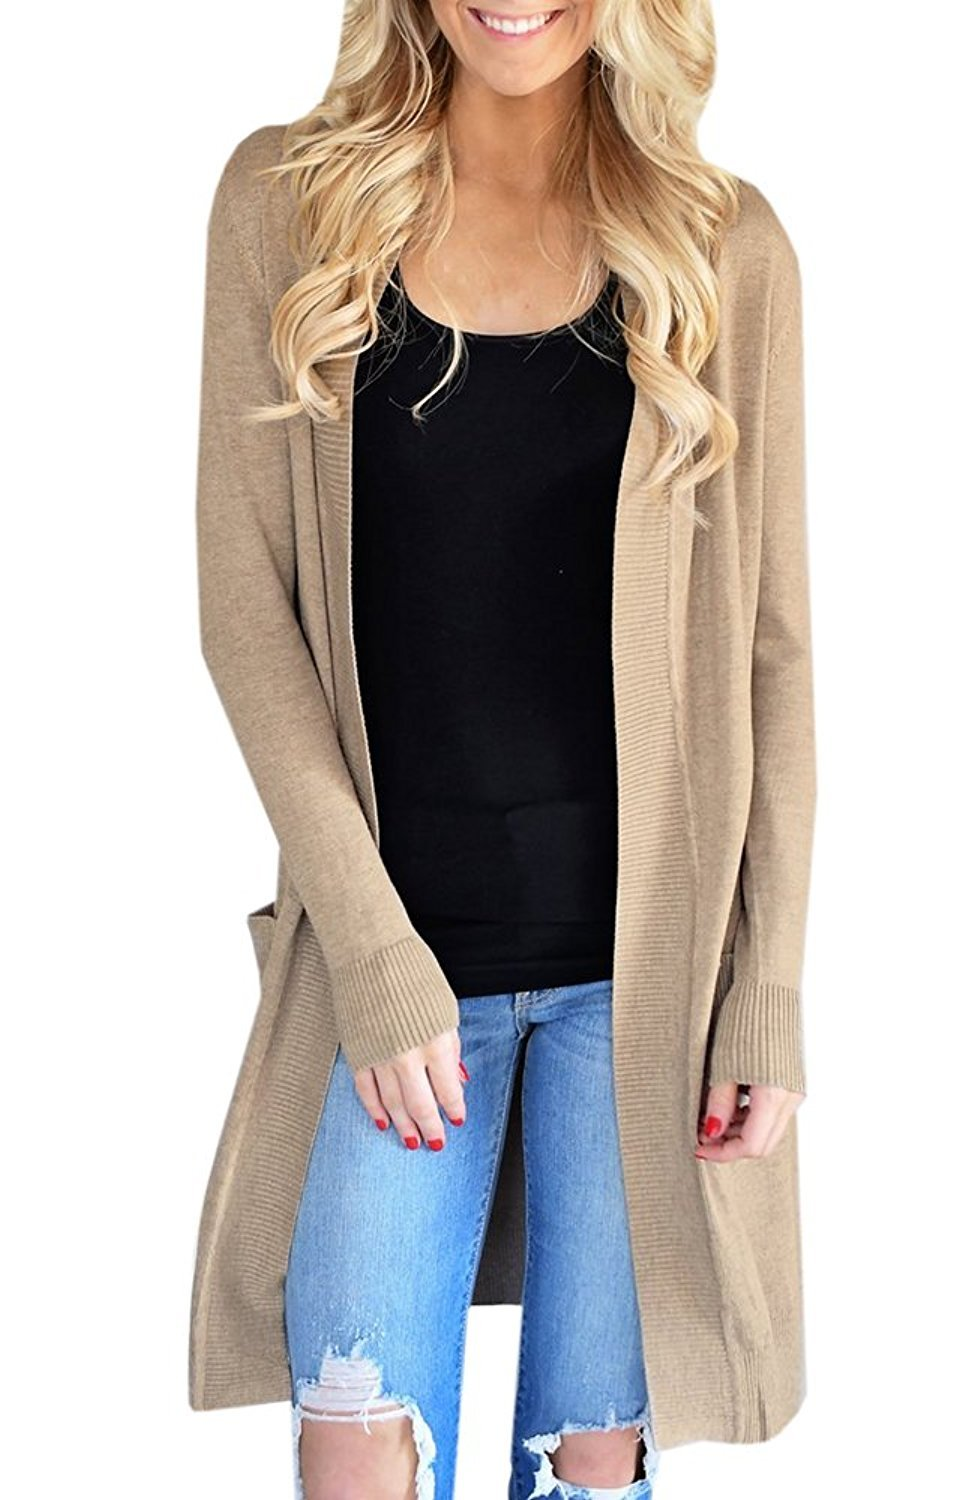 Sherrylily Womens Open Front Long Cardigans Long Sleeve Solid Color Pocket Sweater Coats Khaki X-Large